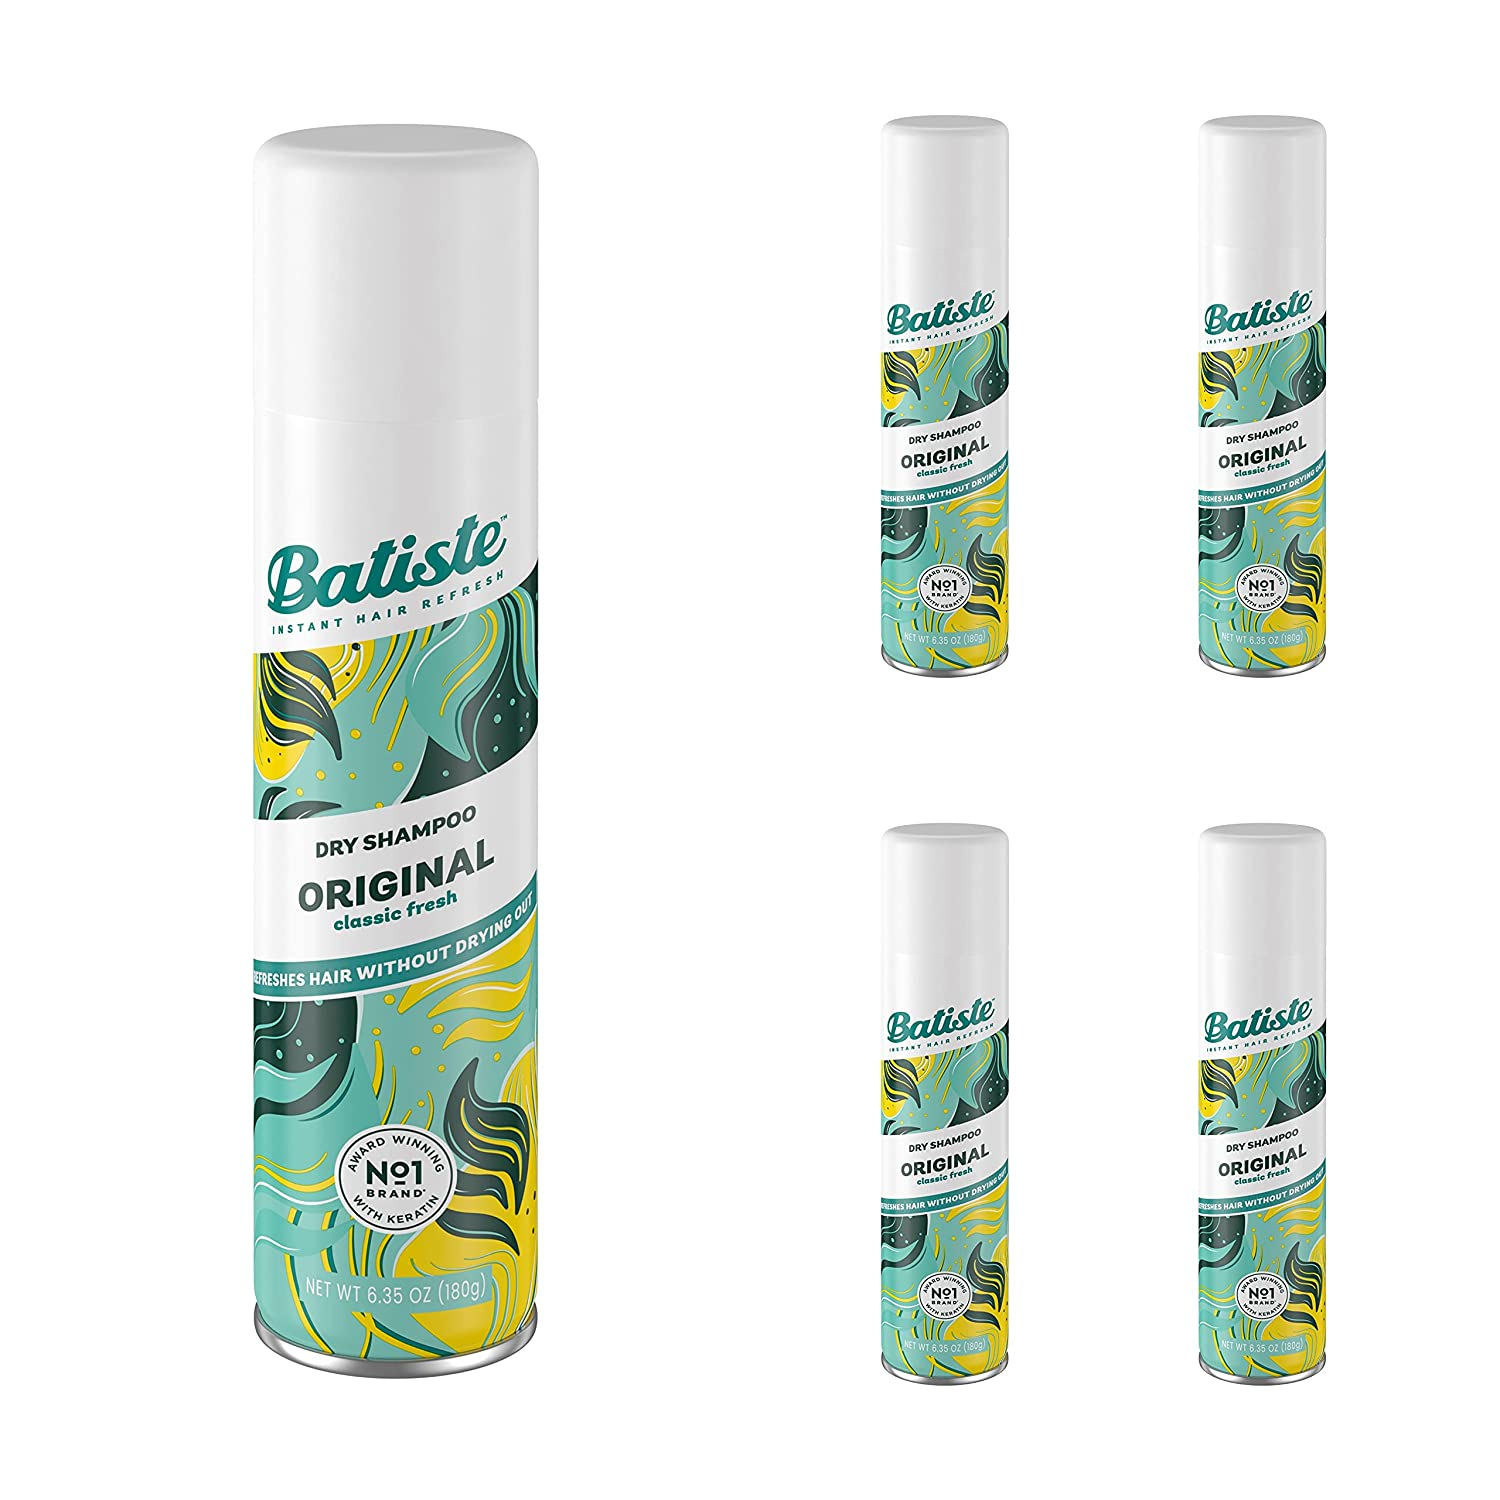 Batiste dry shampoo original fragrance We OFFer at cheap prices Count 5 O Max 50% OFF 6.73